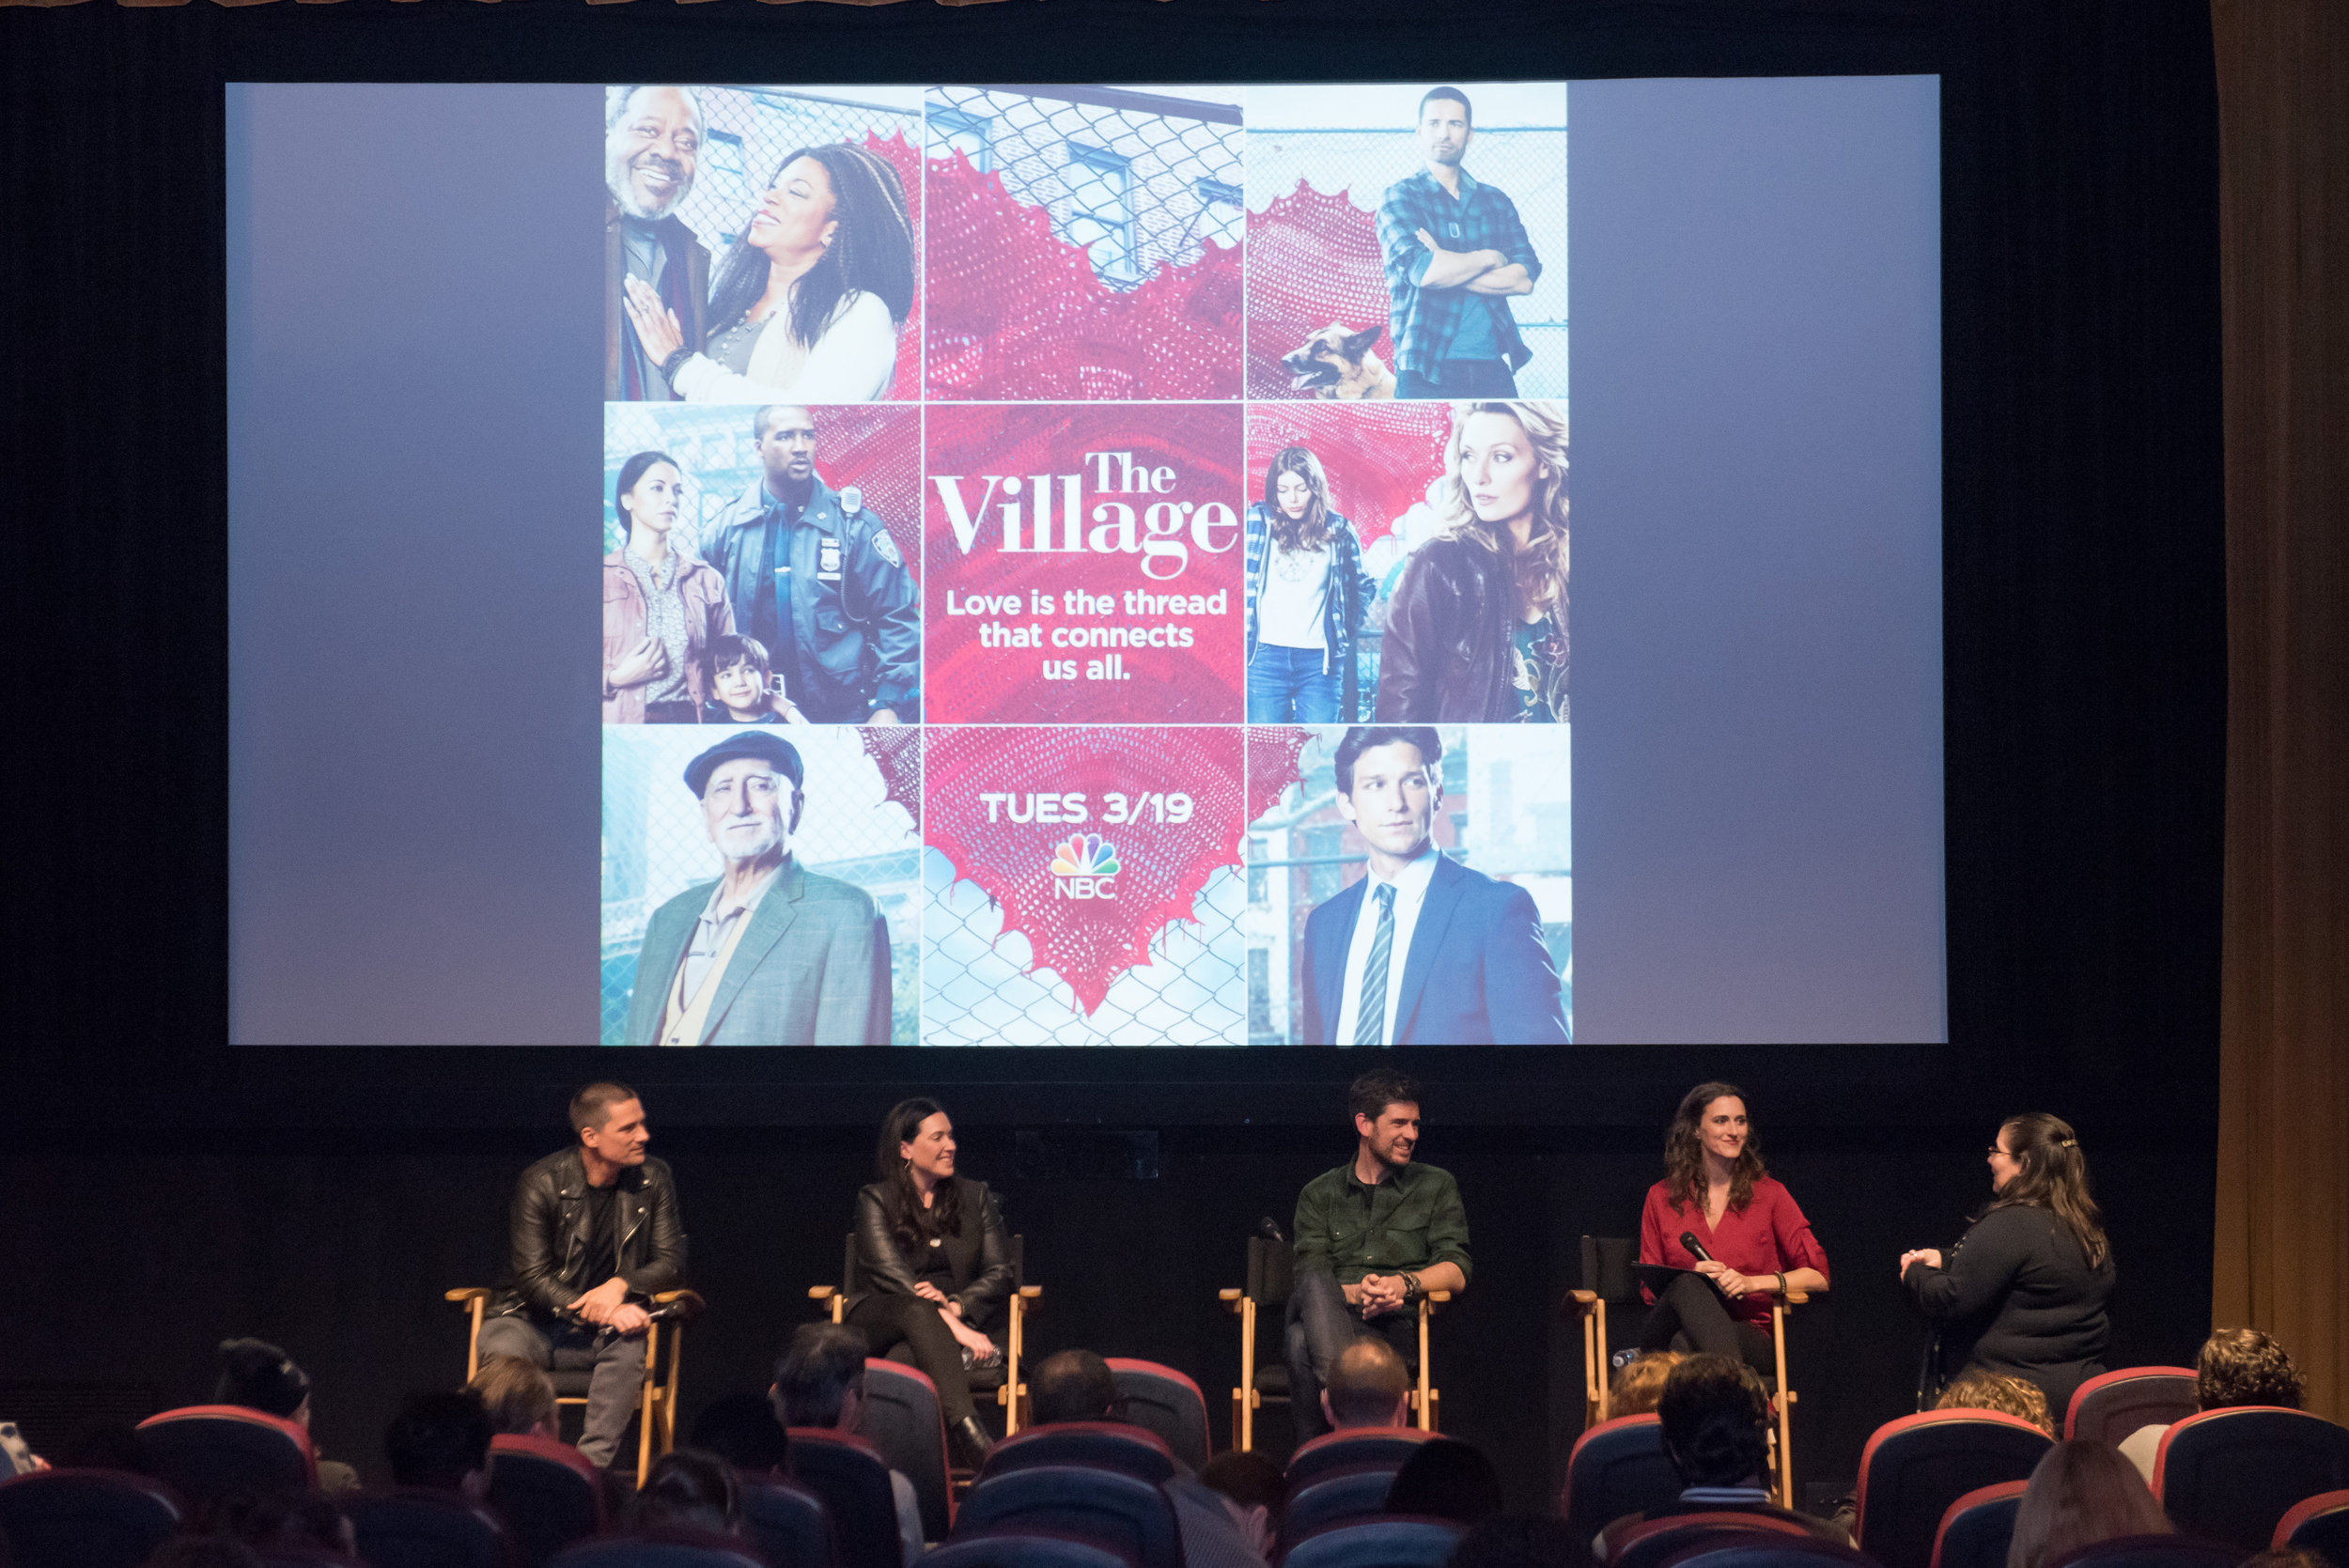 From left to right: Warren Christie ('Nick'), Jessica Rhoades (Executive Producer), Mike Daniels (Writer, Creator), Shannon Corbeil (panel moderator). Image by Scott Angelhart/NBC.